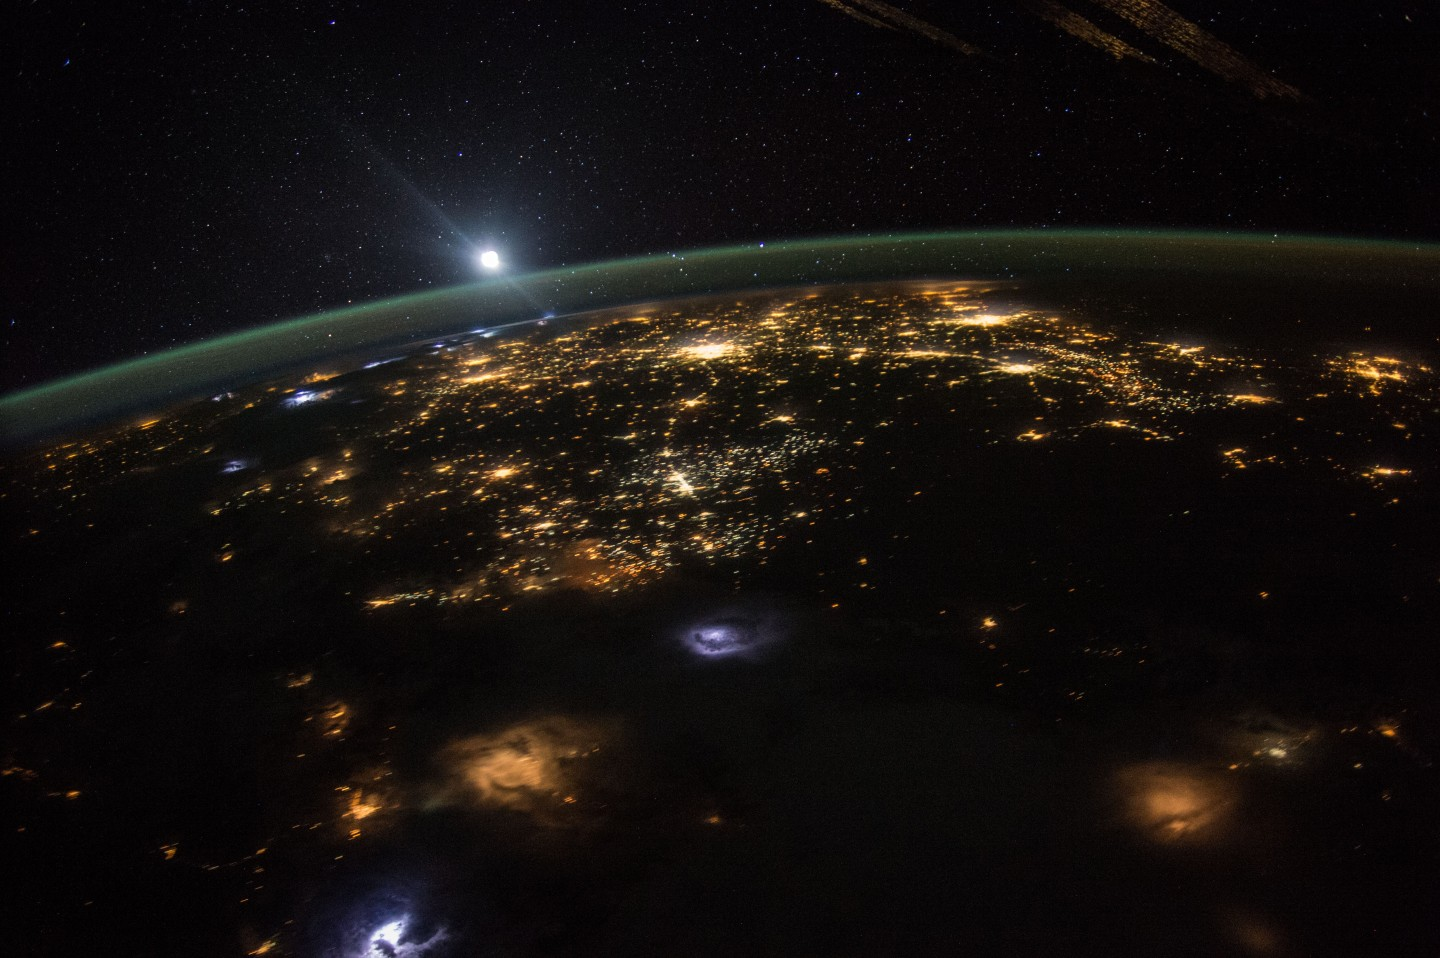 NASA astronaut Scott Kelly took this photograph of a moonrise over the western united states.